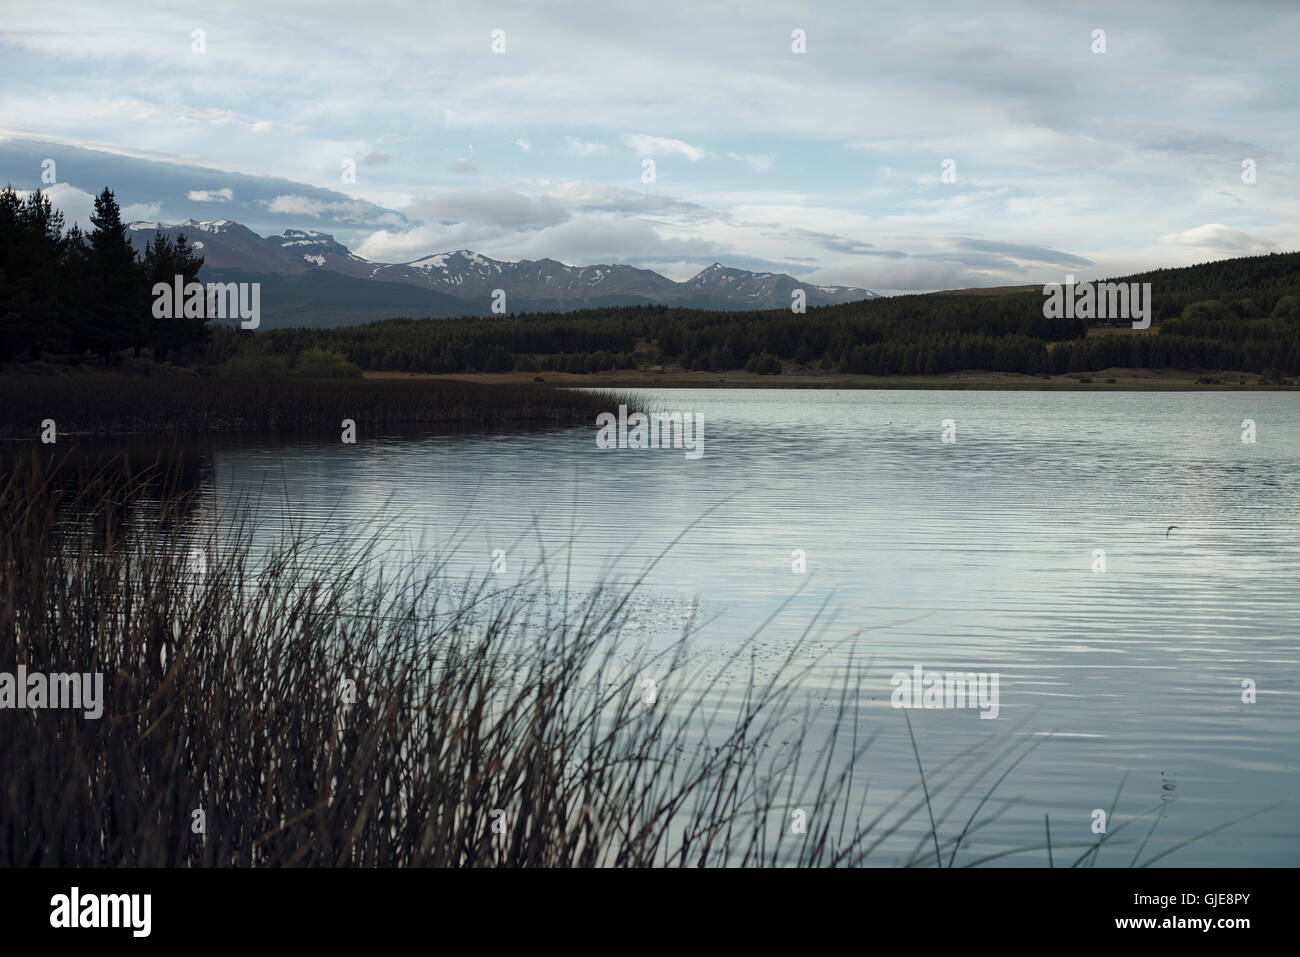 Lake in Esquel Patagonia Argentina - Stock Image